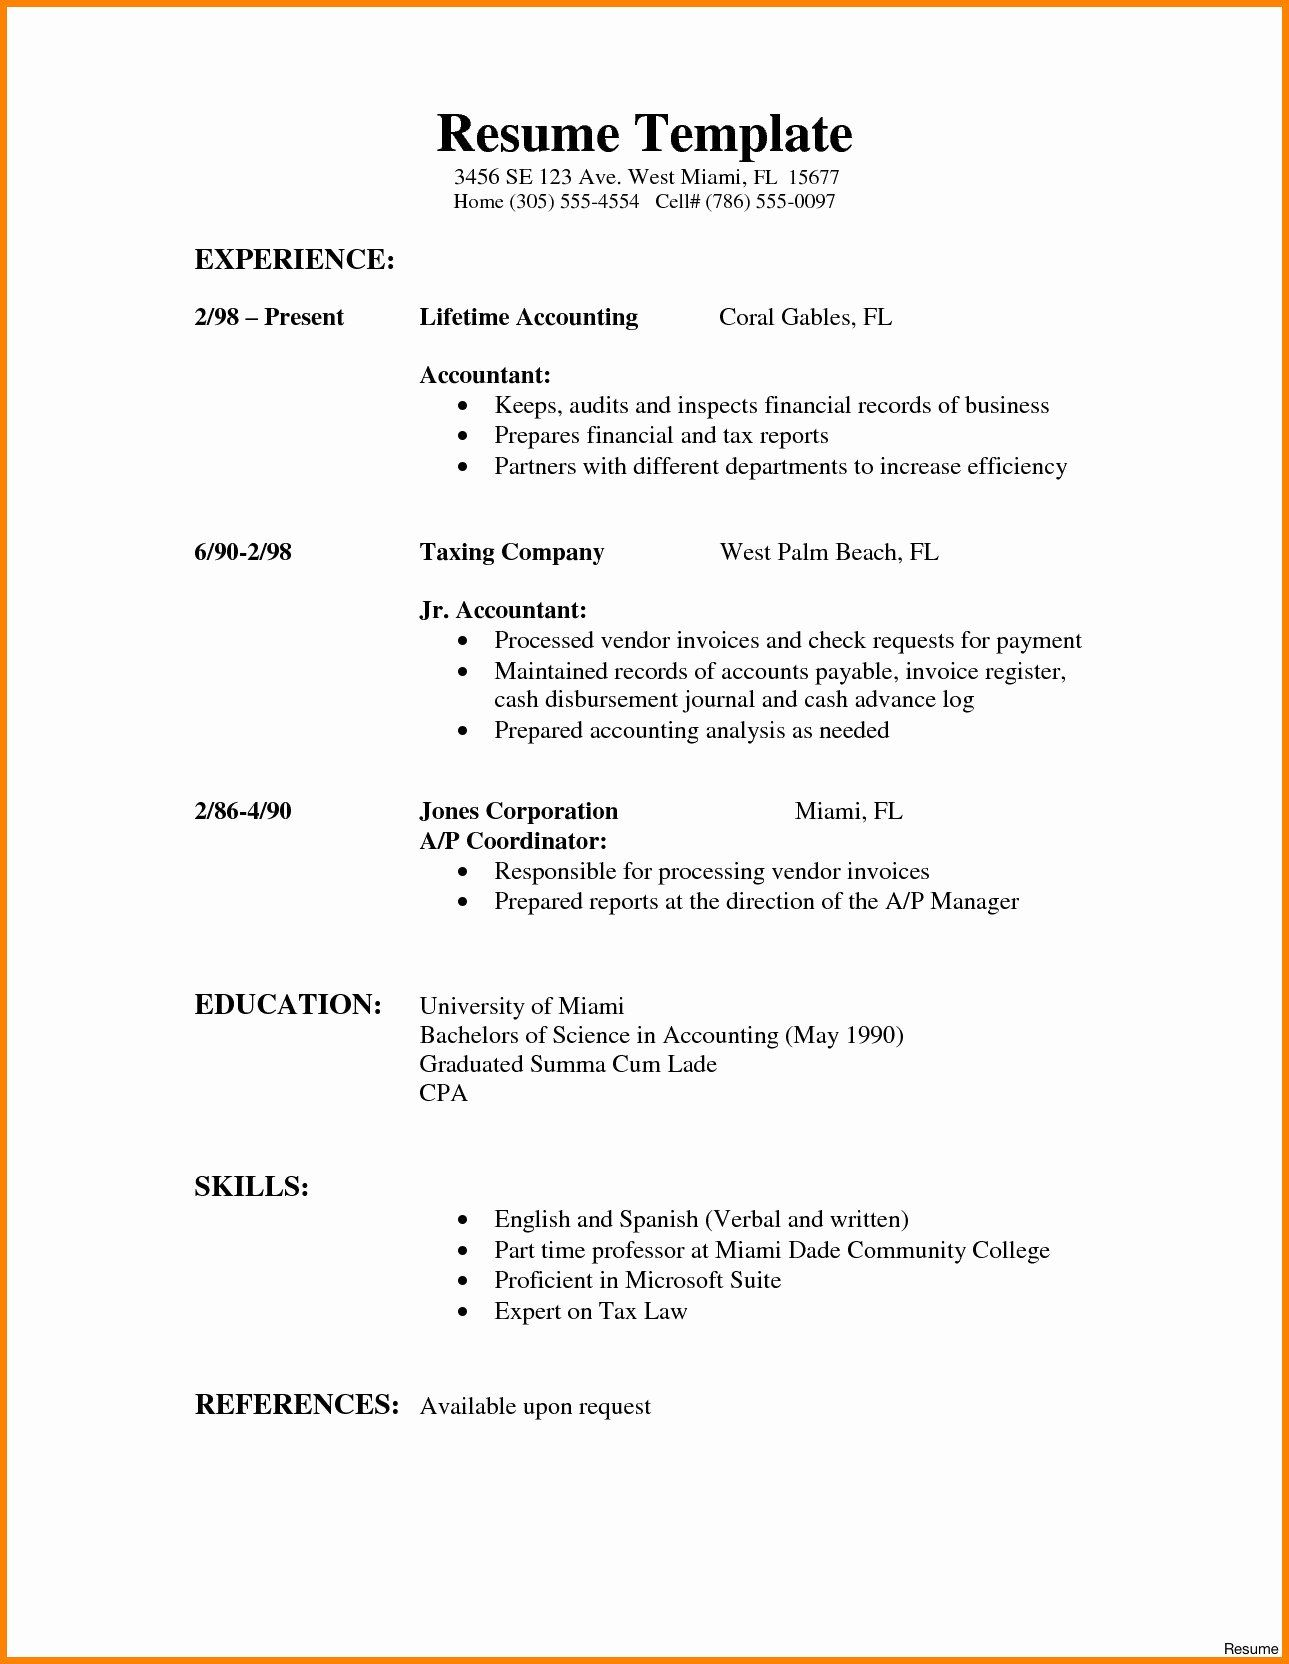 27 Basic Resume Examples for Part Time Jobs in 2020